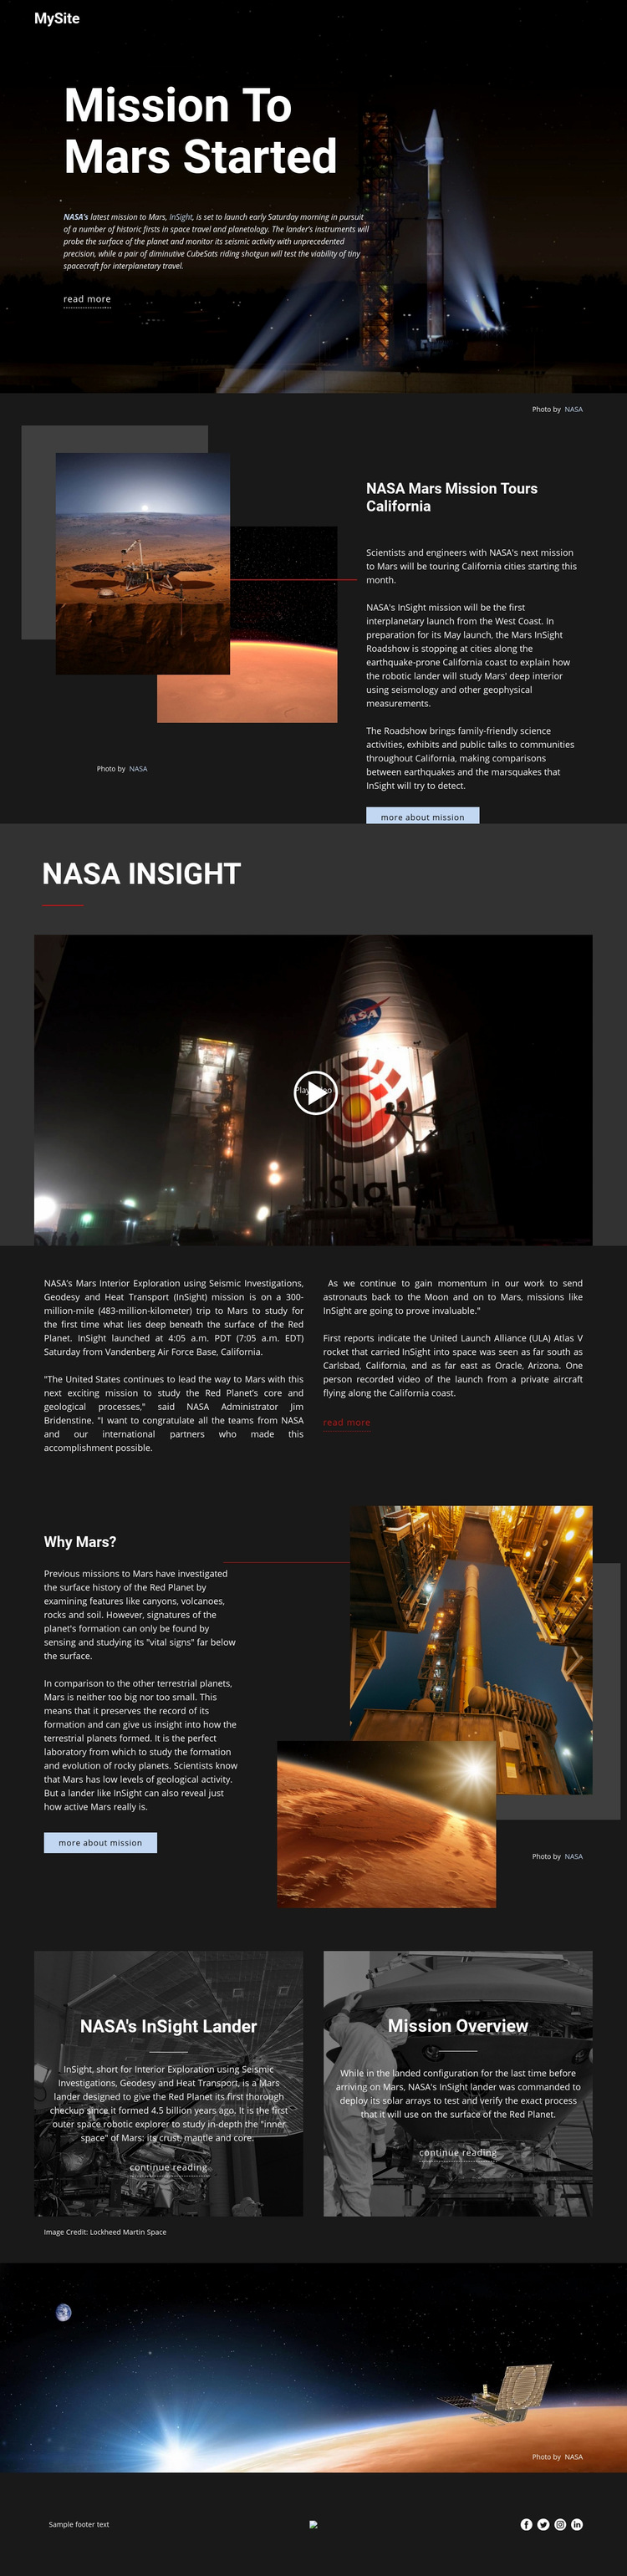 Mission To Mars Web Page Design